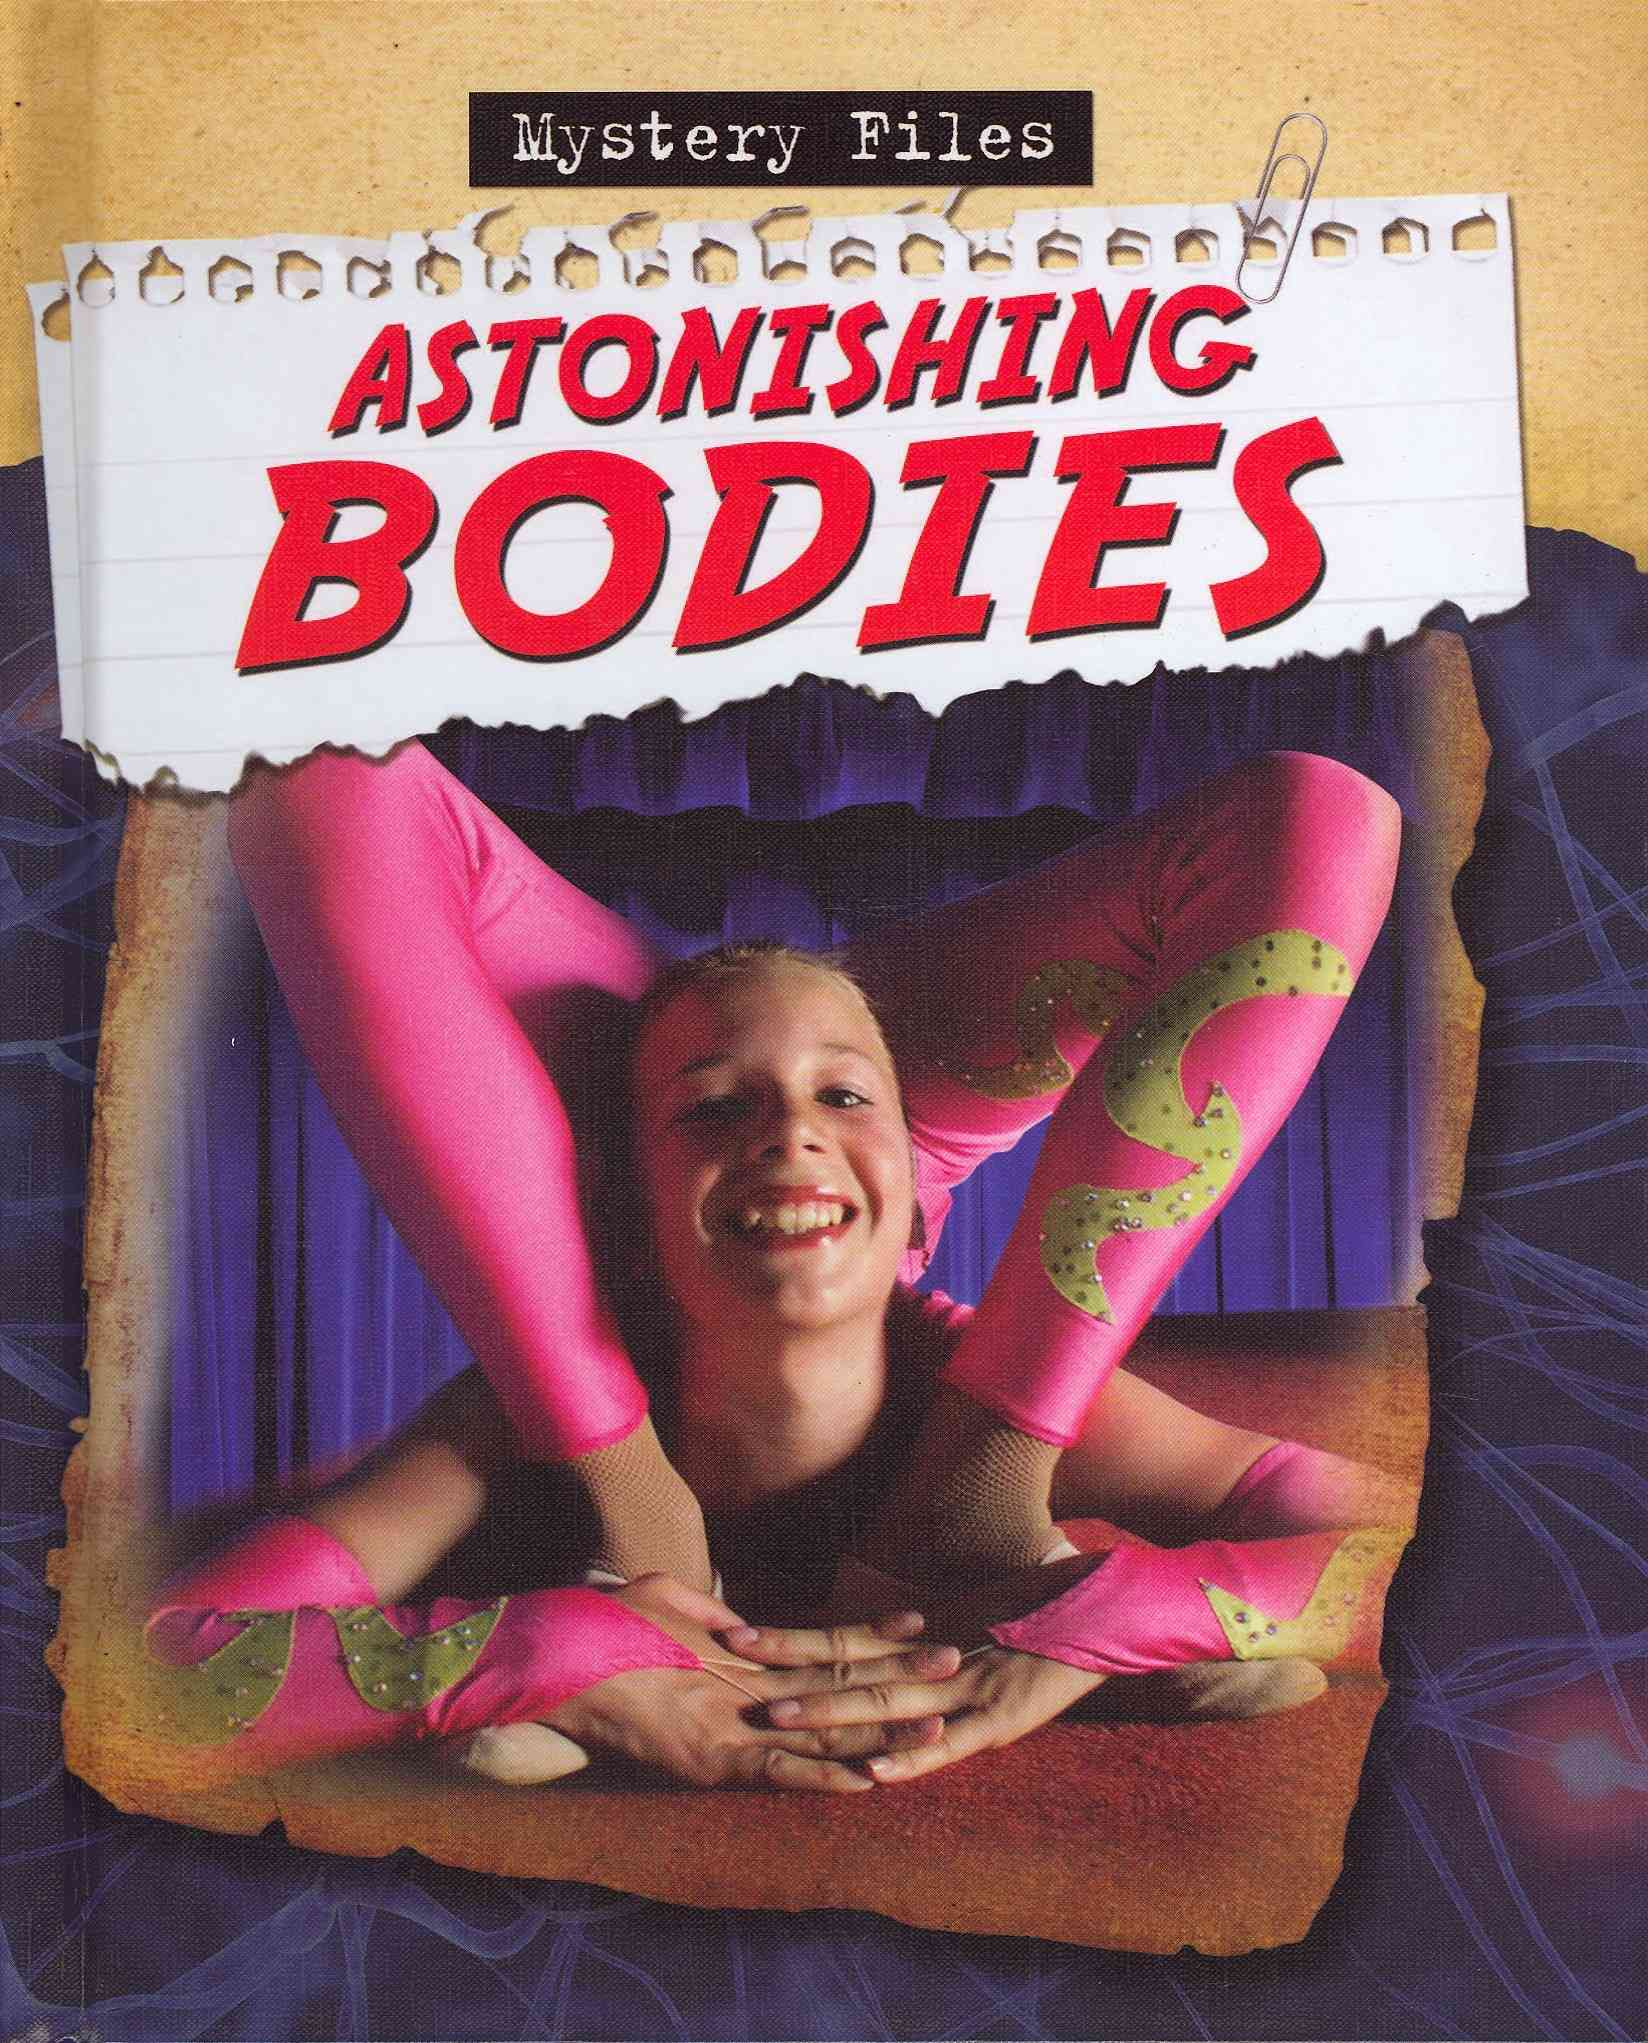 Astonishing Bodies